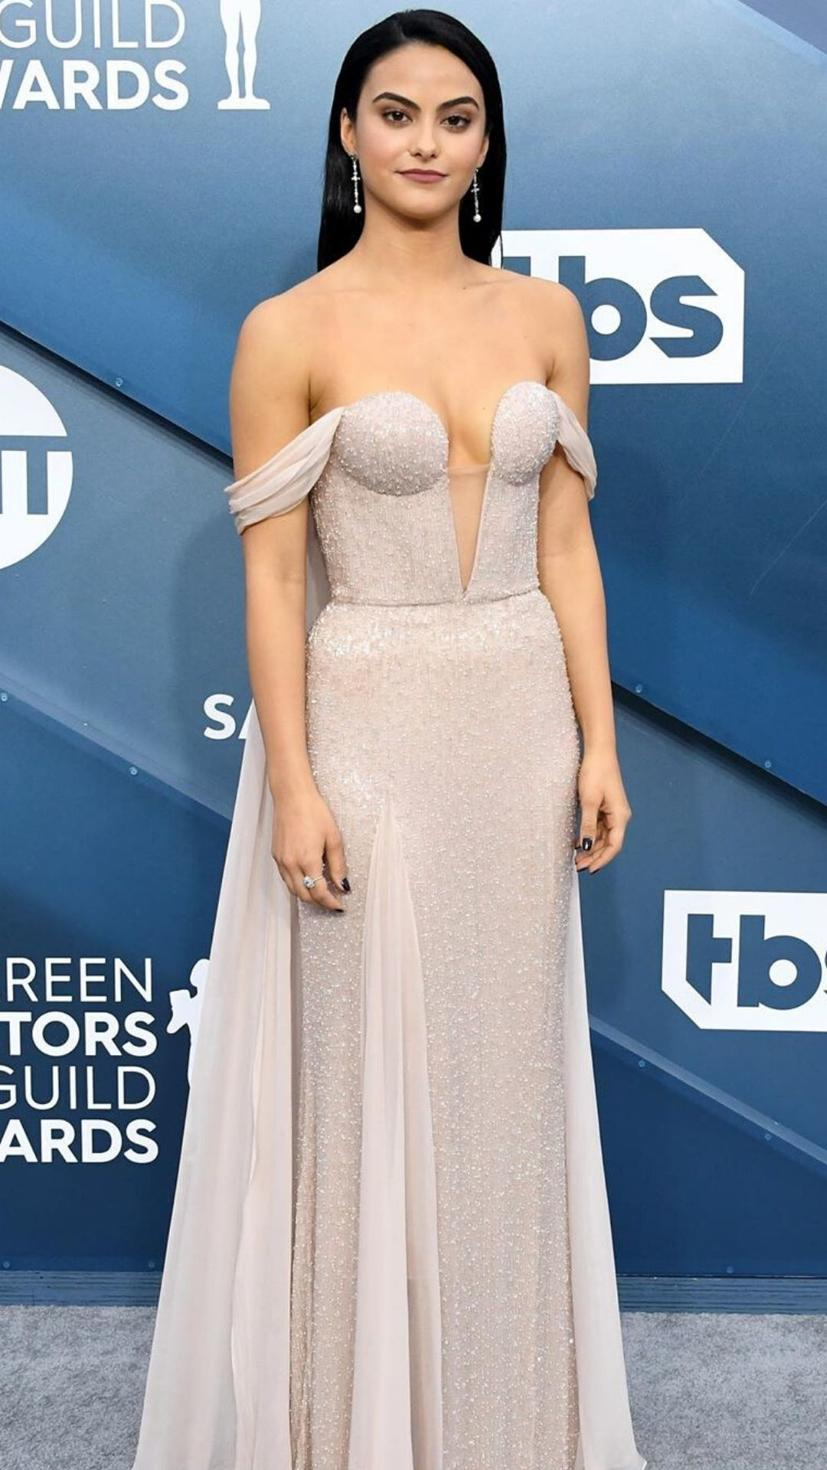 Camila Mendes wears a pink Ralph & Russo gown